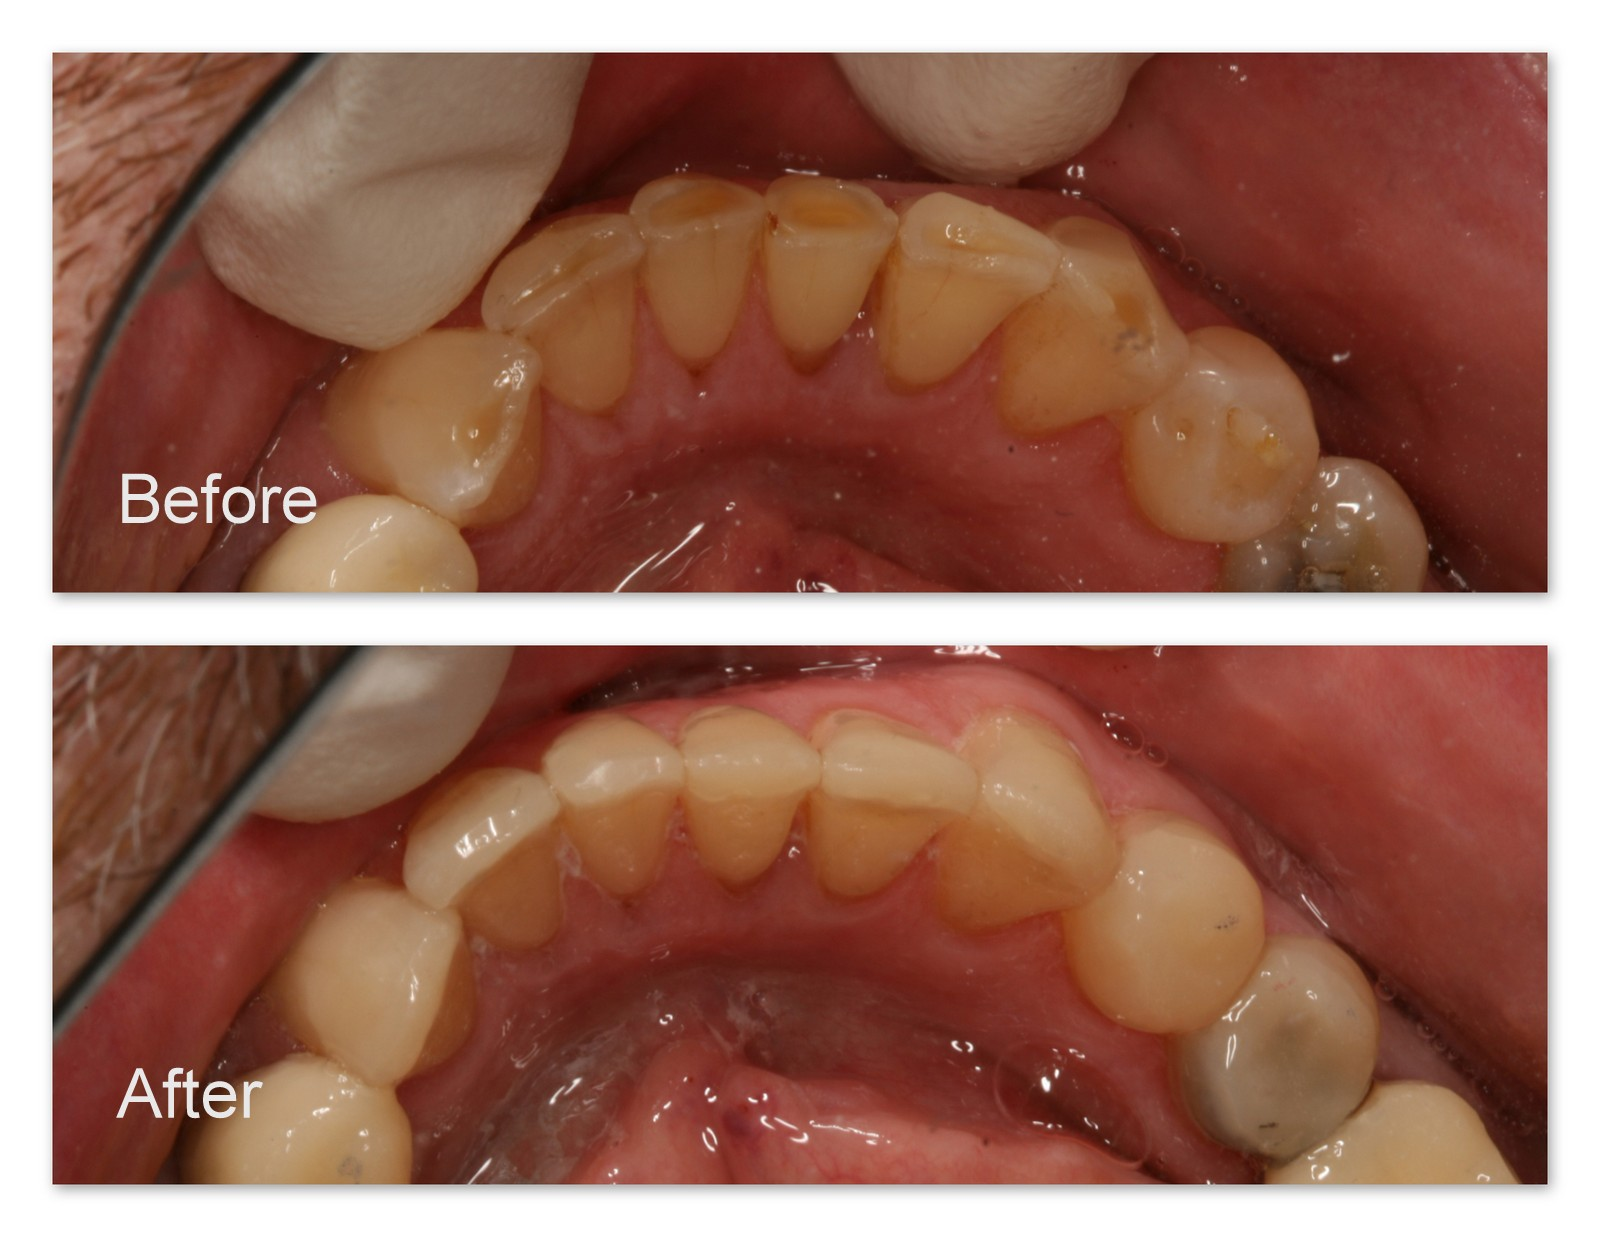 Before- A close-up of the worn lower teeth. After- These teeth have been restored by Dr. Jack Hosner of Portage, MI.